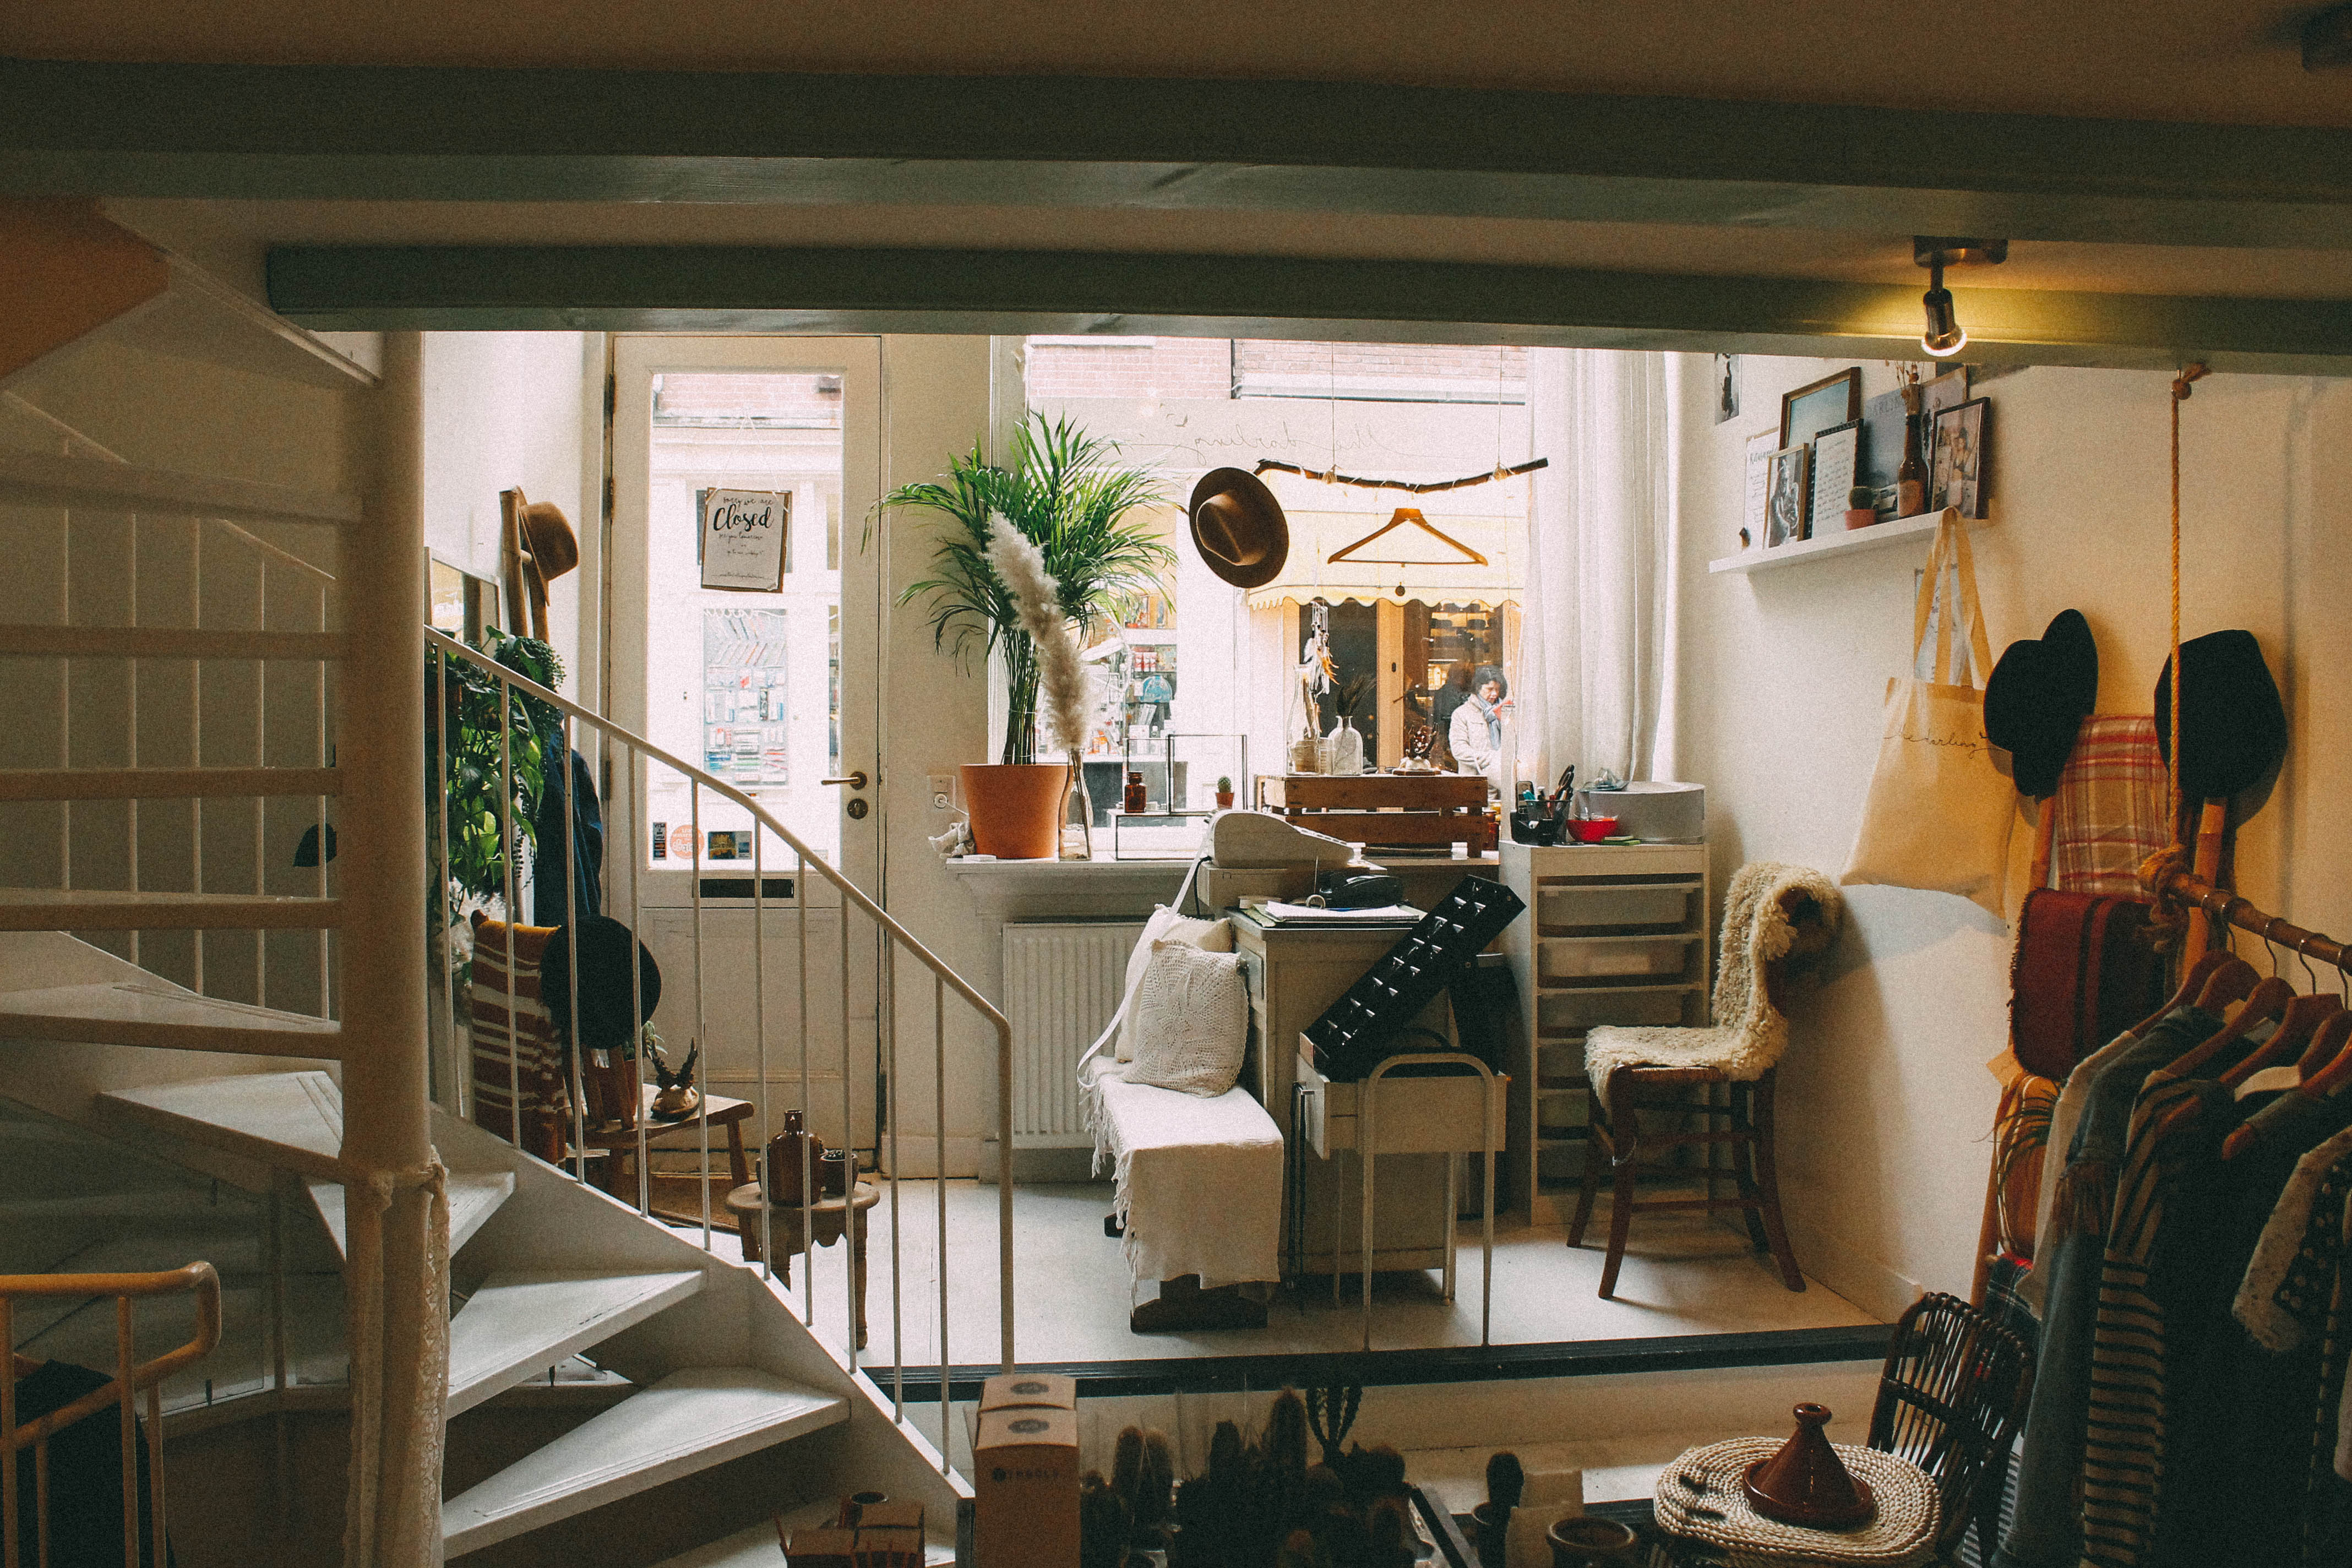 A Busy Living Room With Various Trinkets And Decorations And A Window Looking Out On The